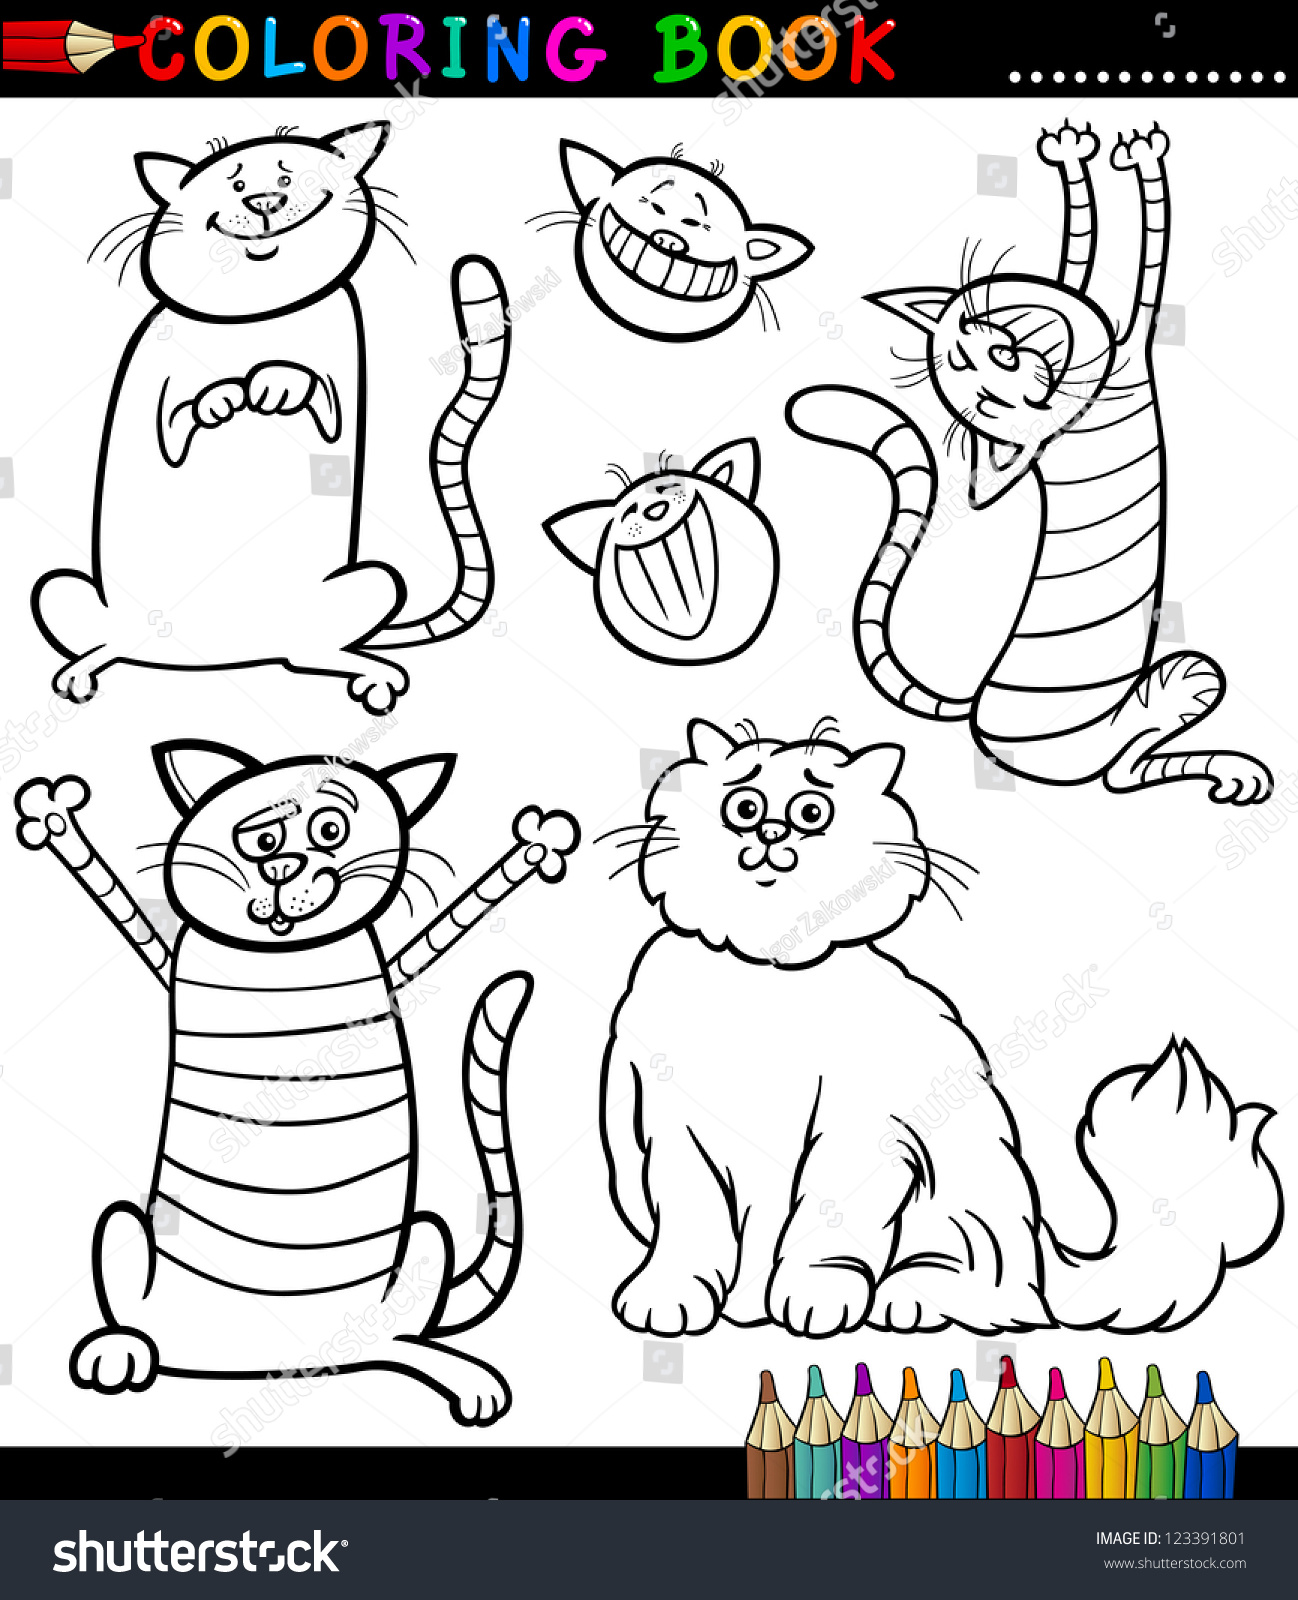 Coloring book kittens - Save To A Lightbox